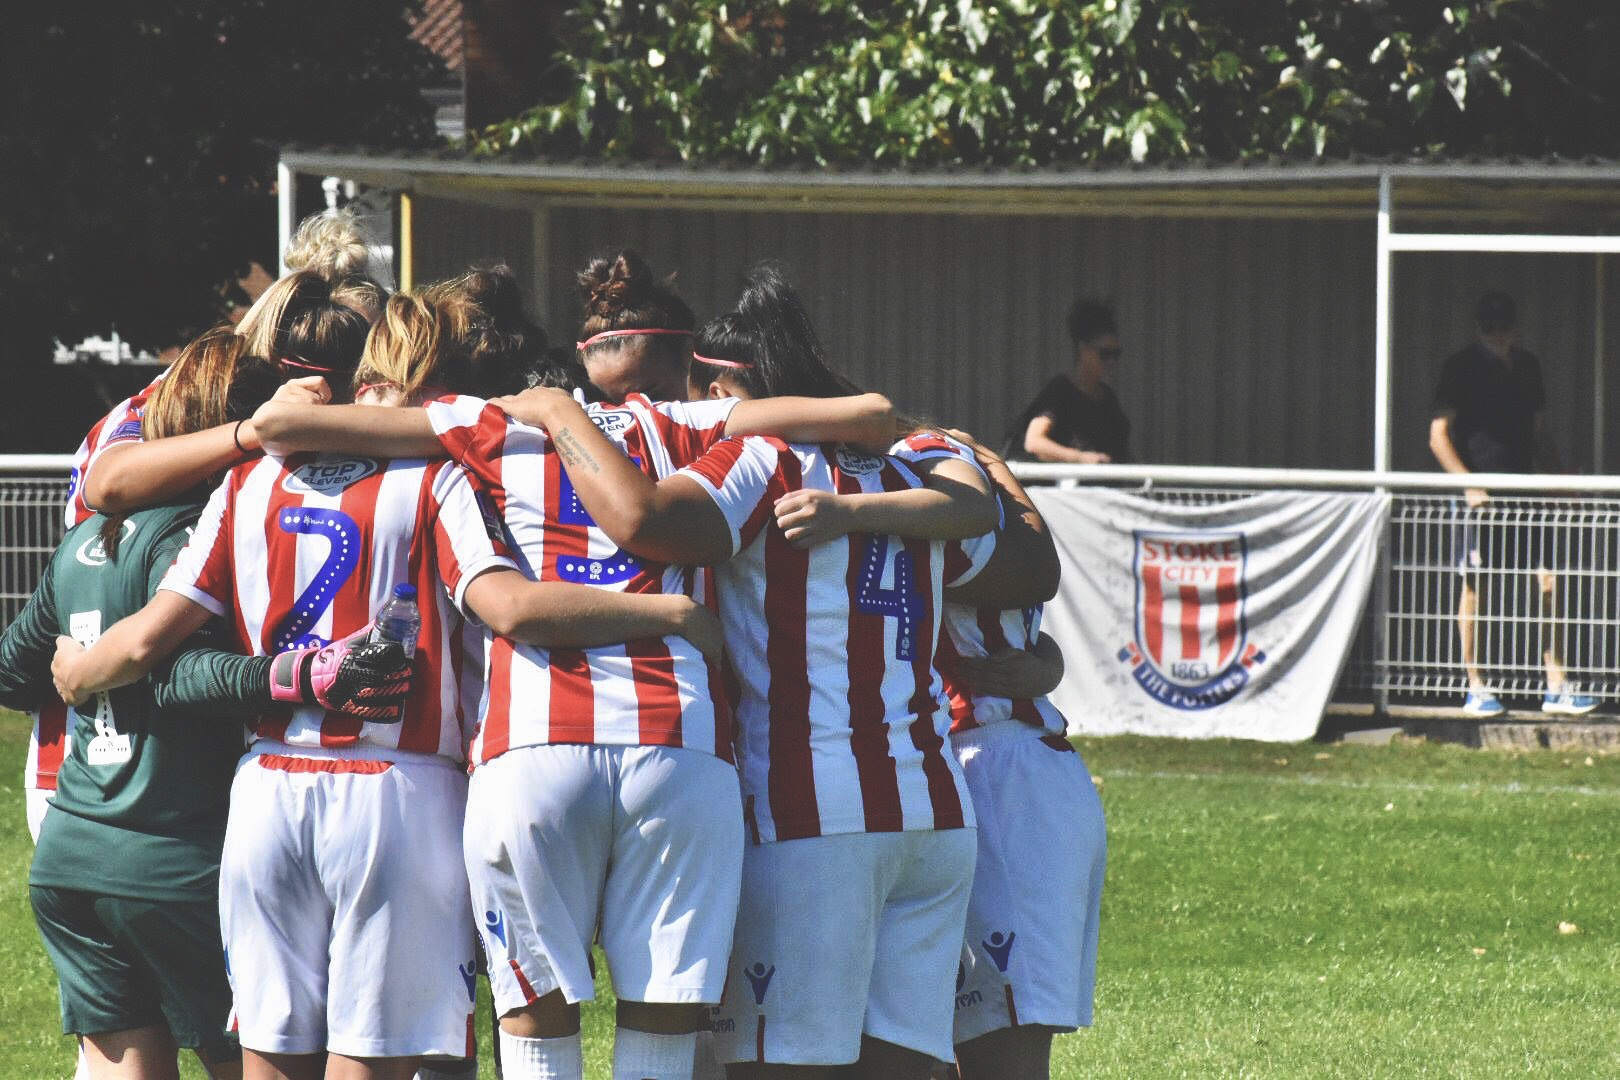 Stoke City Ladies huddle together for a pre match pep talk.